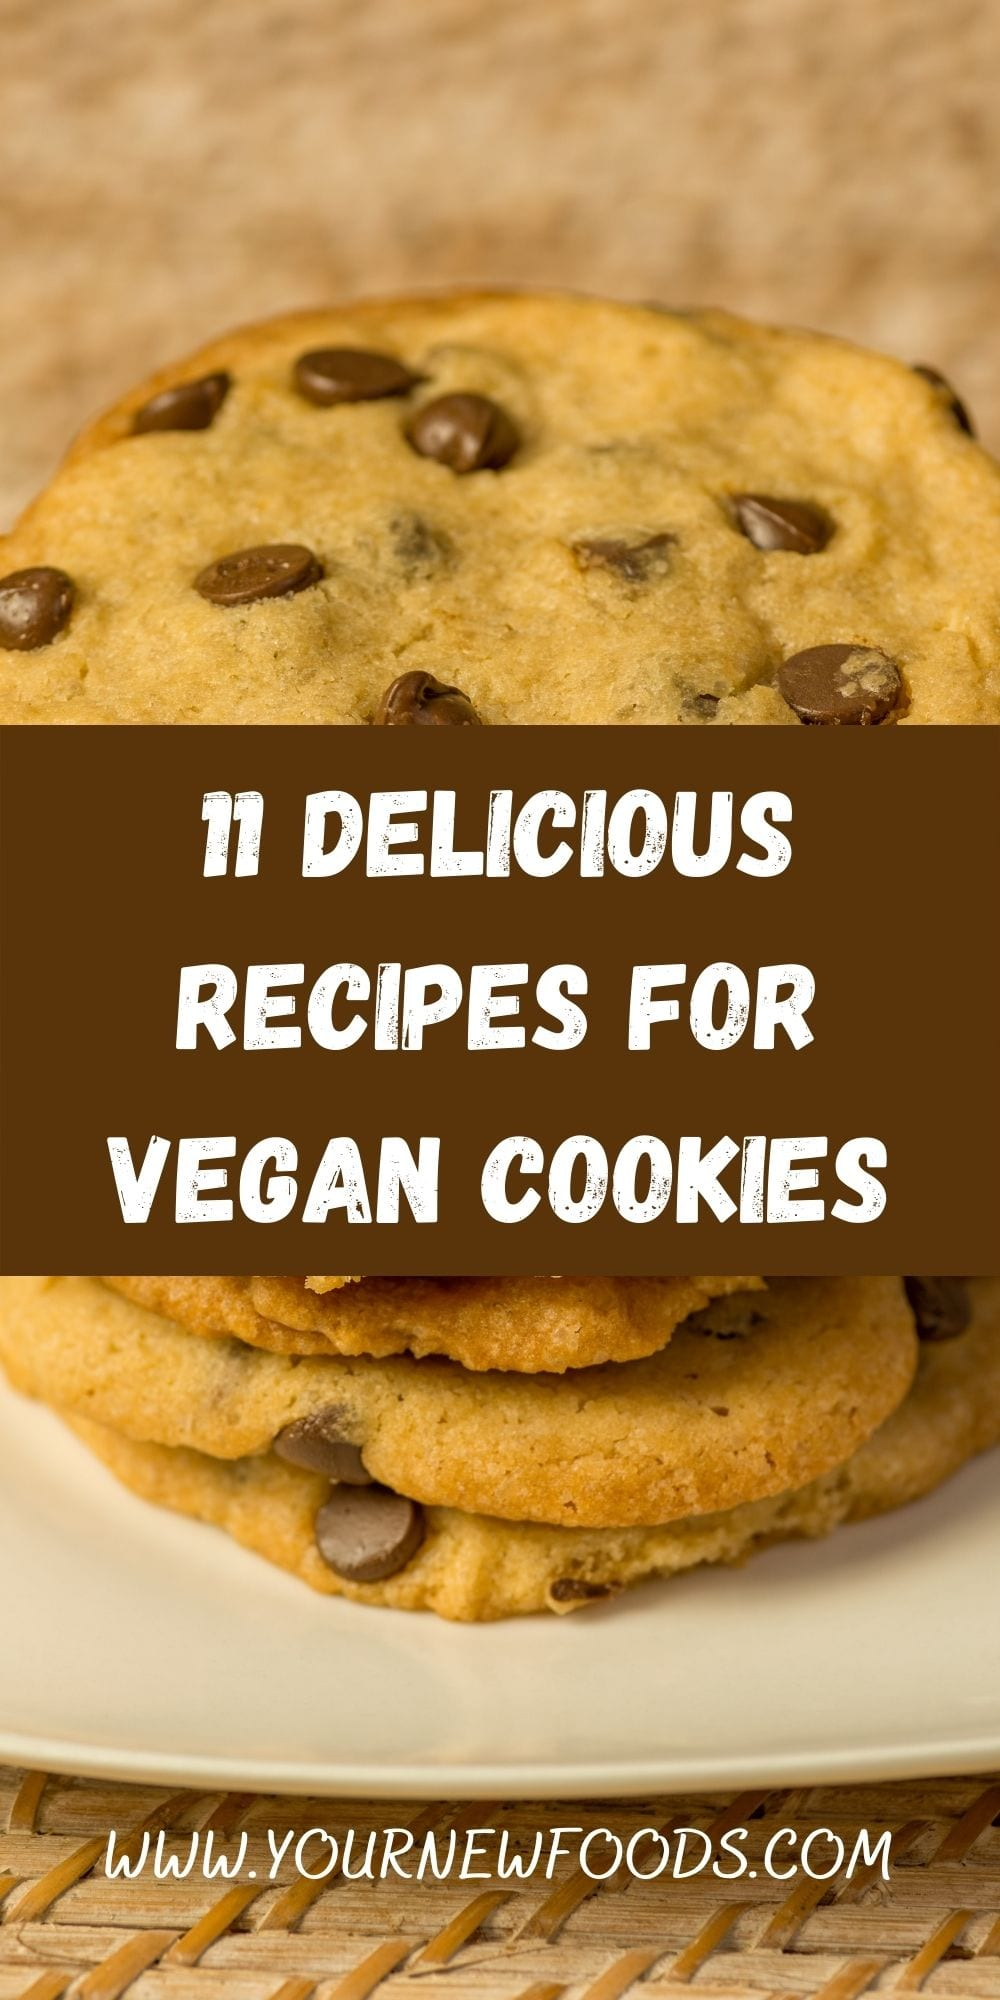 Delicious Recipes For Vegan Cookies with cookies stacked on top of each other on a white plate